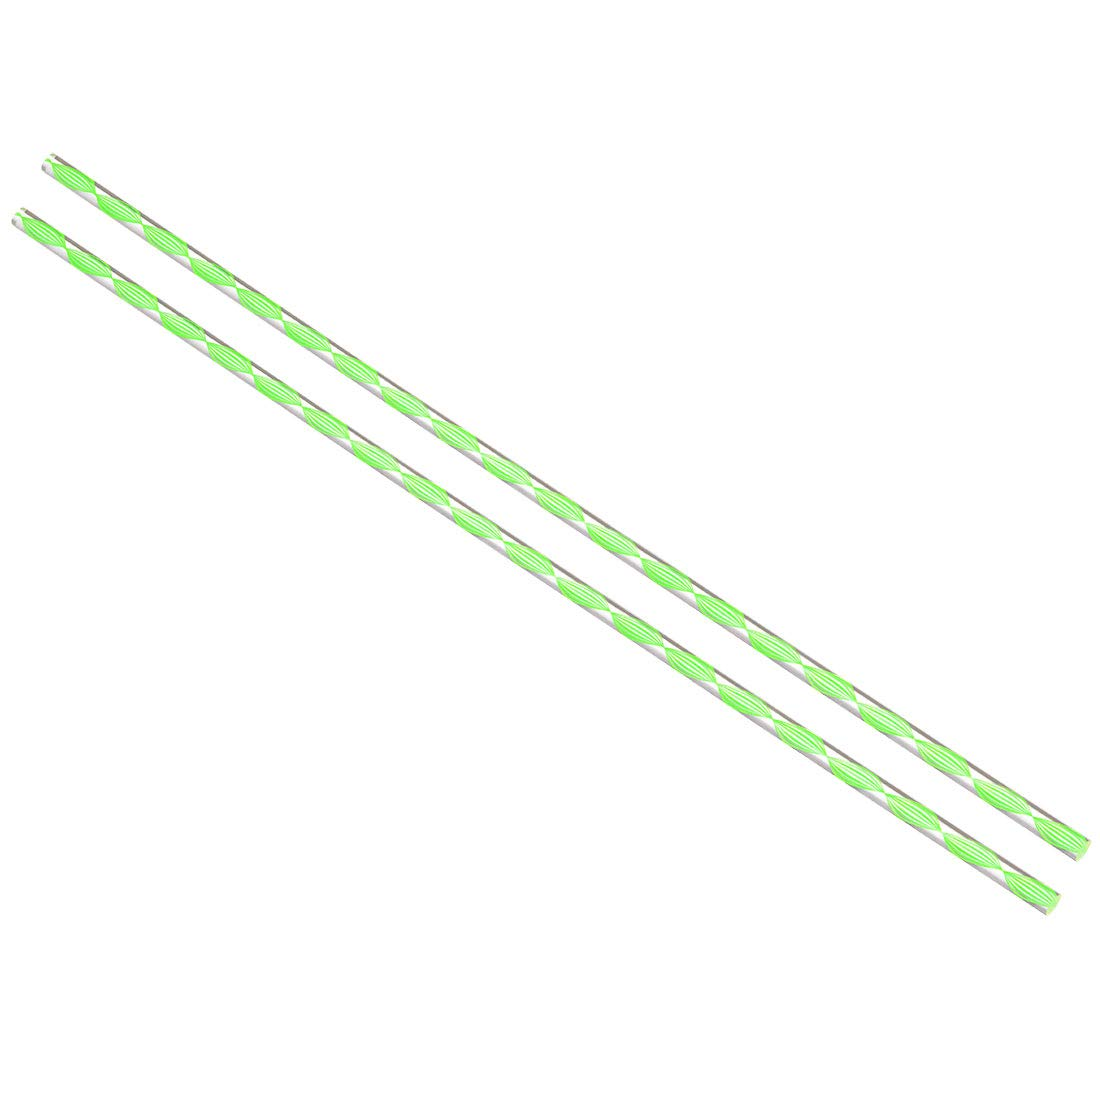 uxcell Acrylic Round Rod,3//8 inch Diameter 20 inch Length,Spiral Green Line,Solid Plxi Glass Plastic Lucite PMMA Bar Stick 2pcs